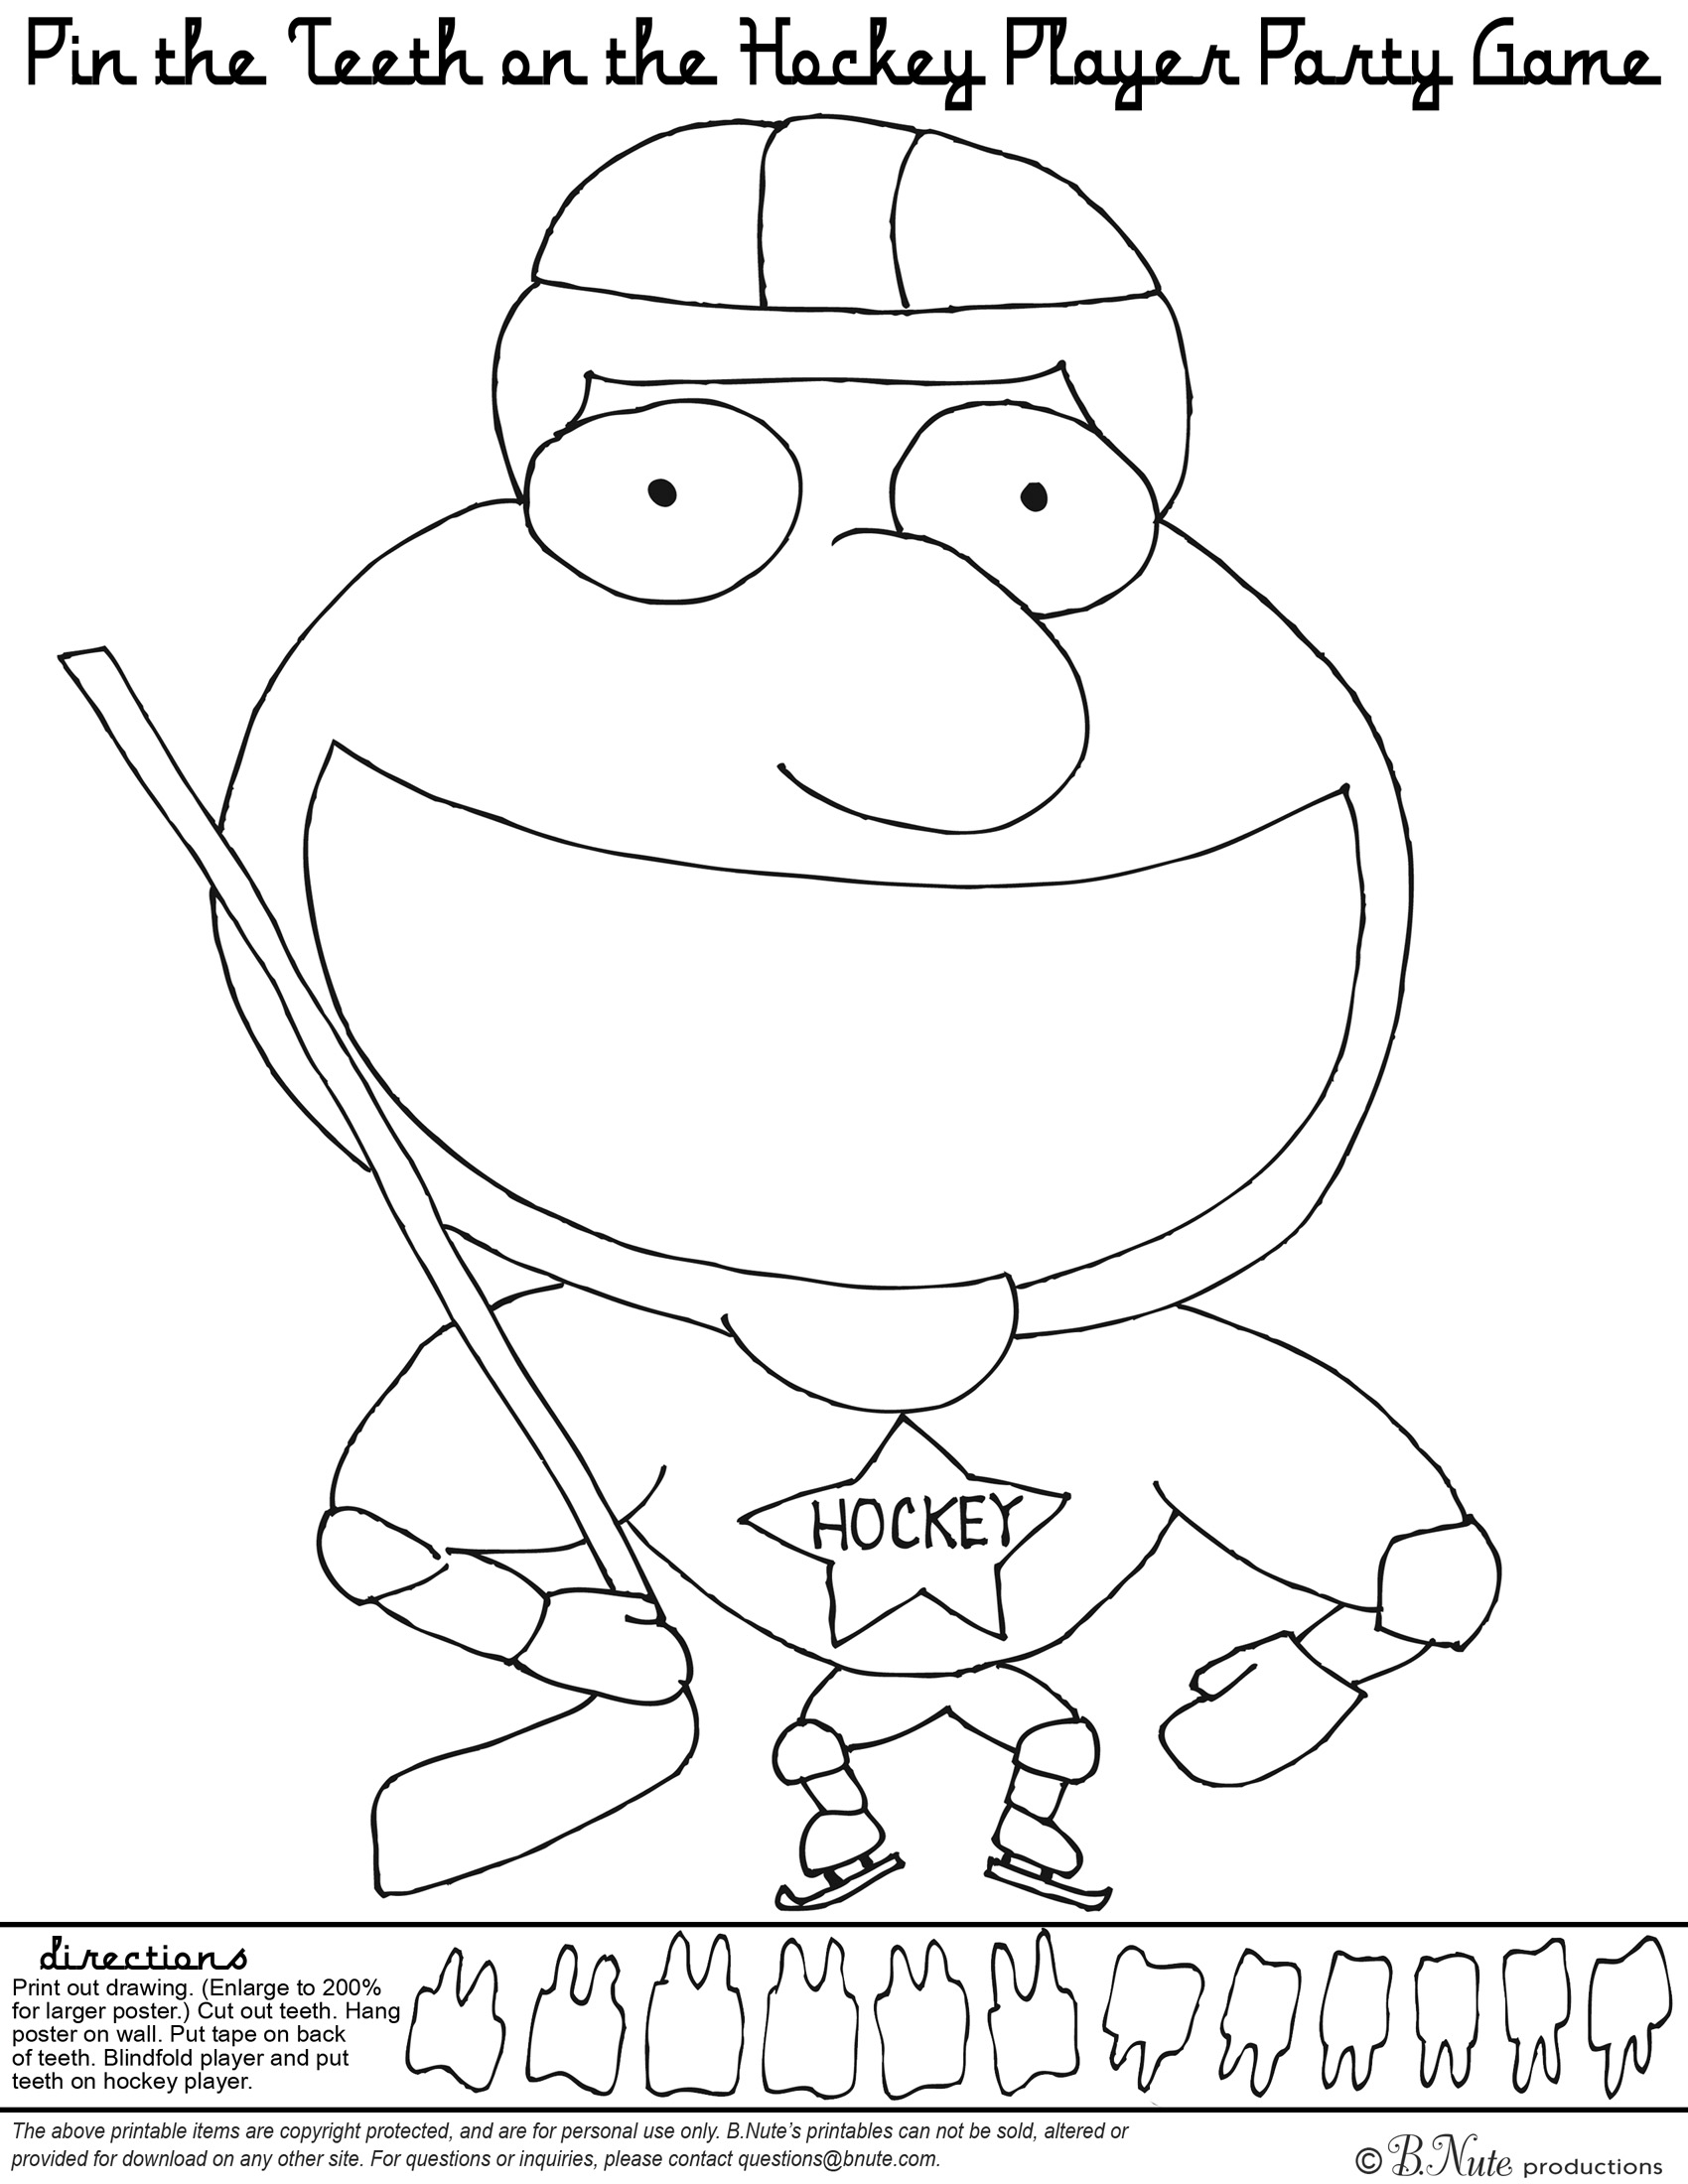 hockey pictures to color bnute productions free printable hockey party game and hockey color pictures to